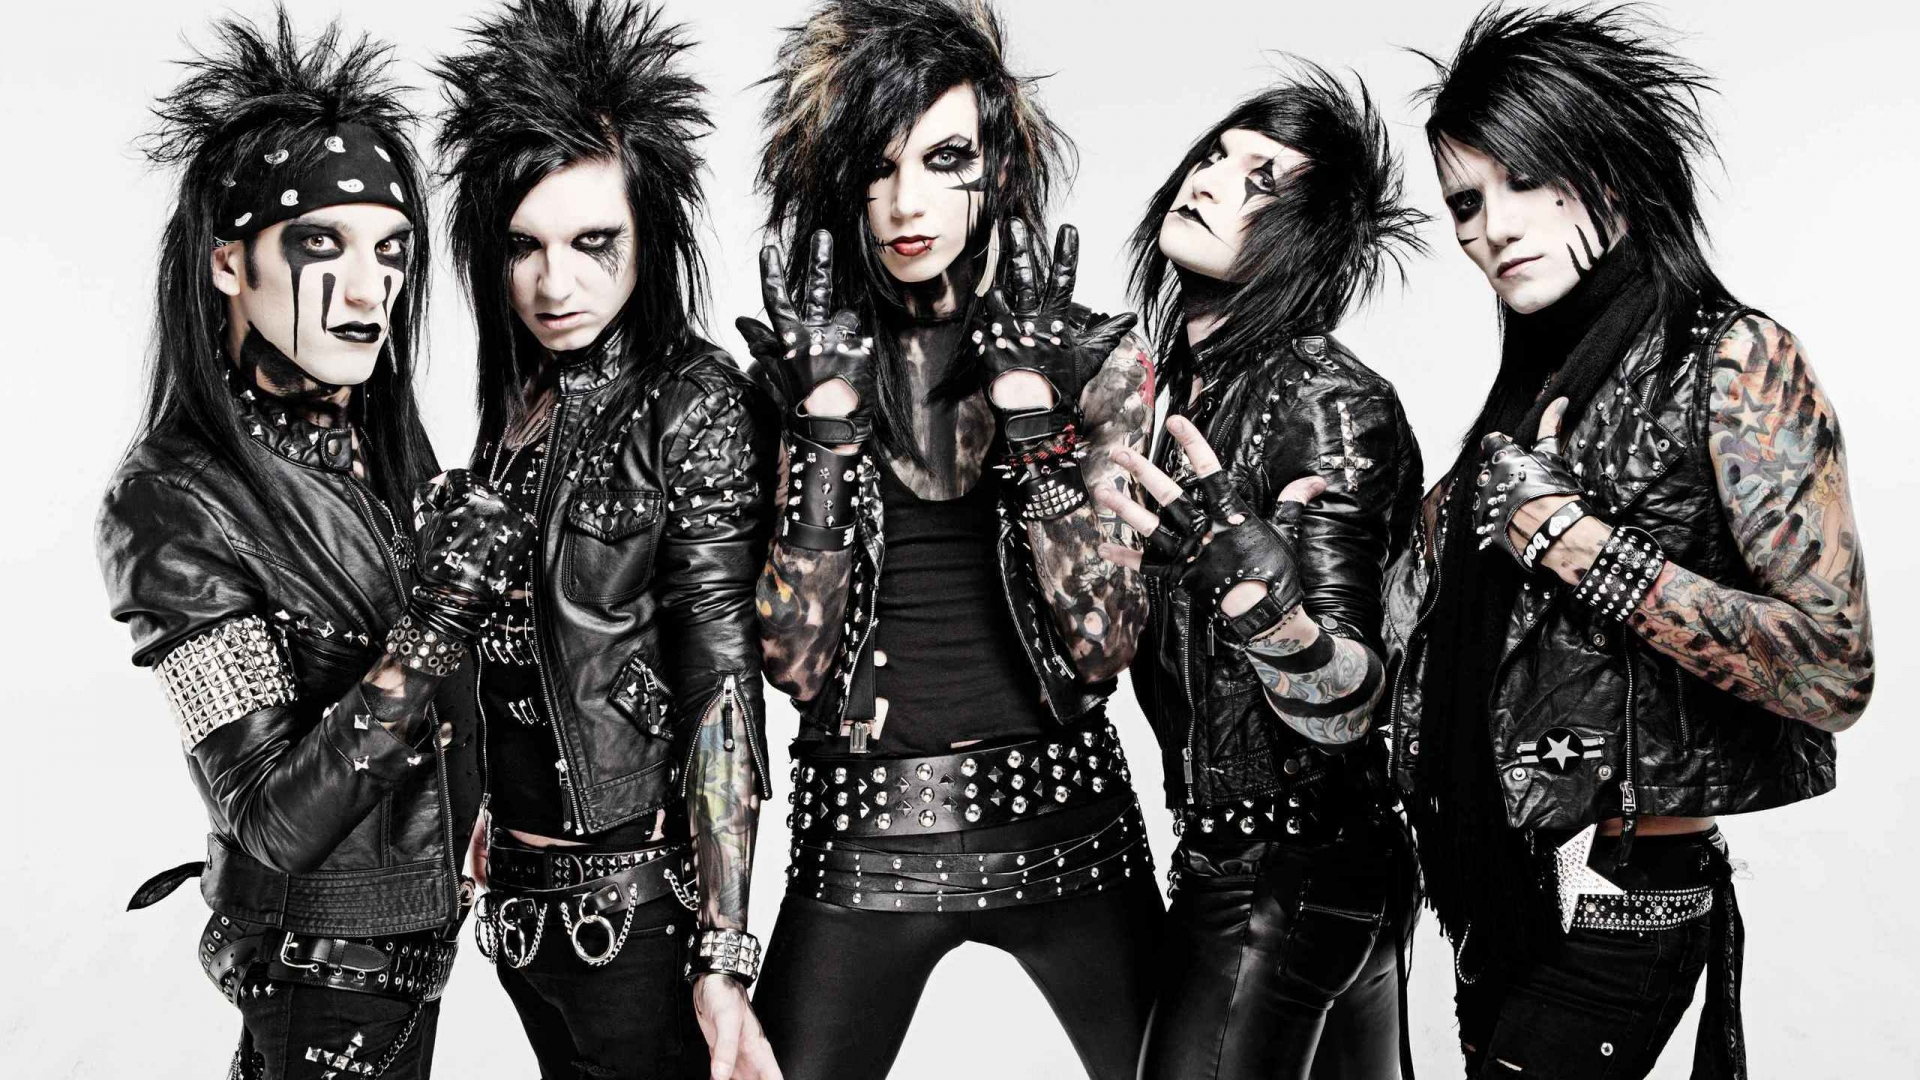 Wallpapers Of The Day Black Veil Brides 1920x1080px 1920x1080